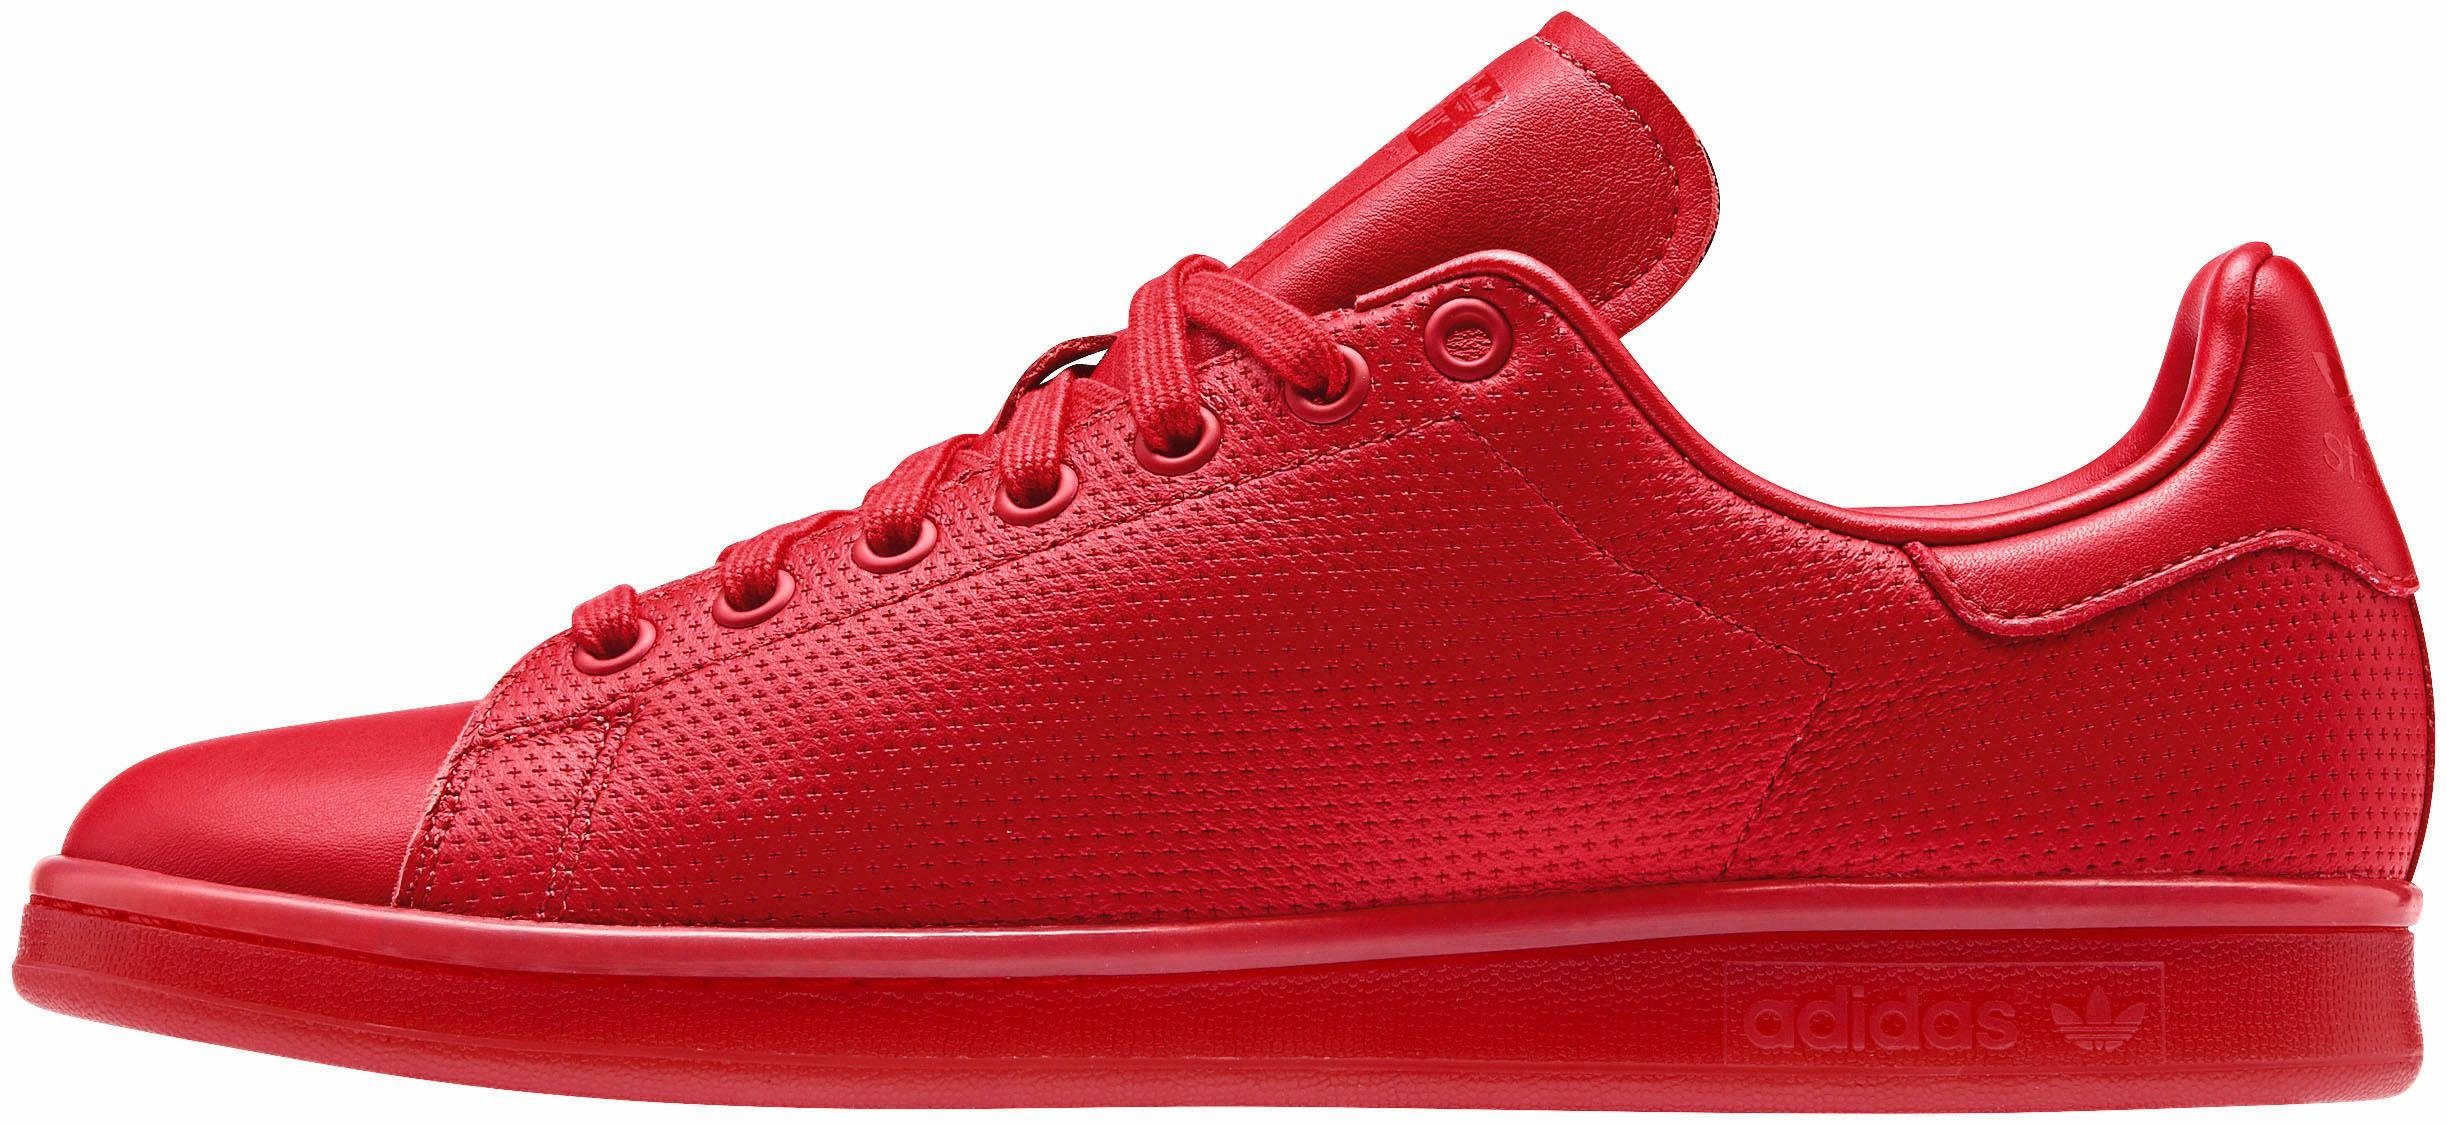 adidas Originals Stan Smith adicolor Sneaker  rot